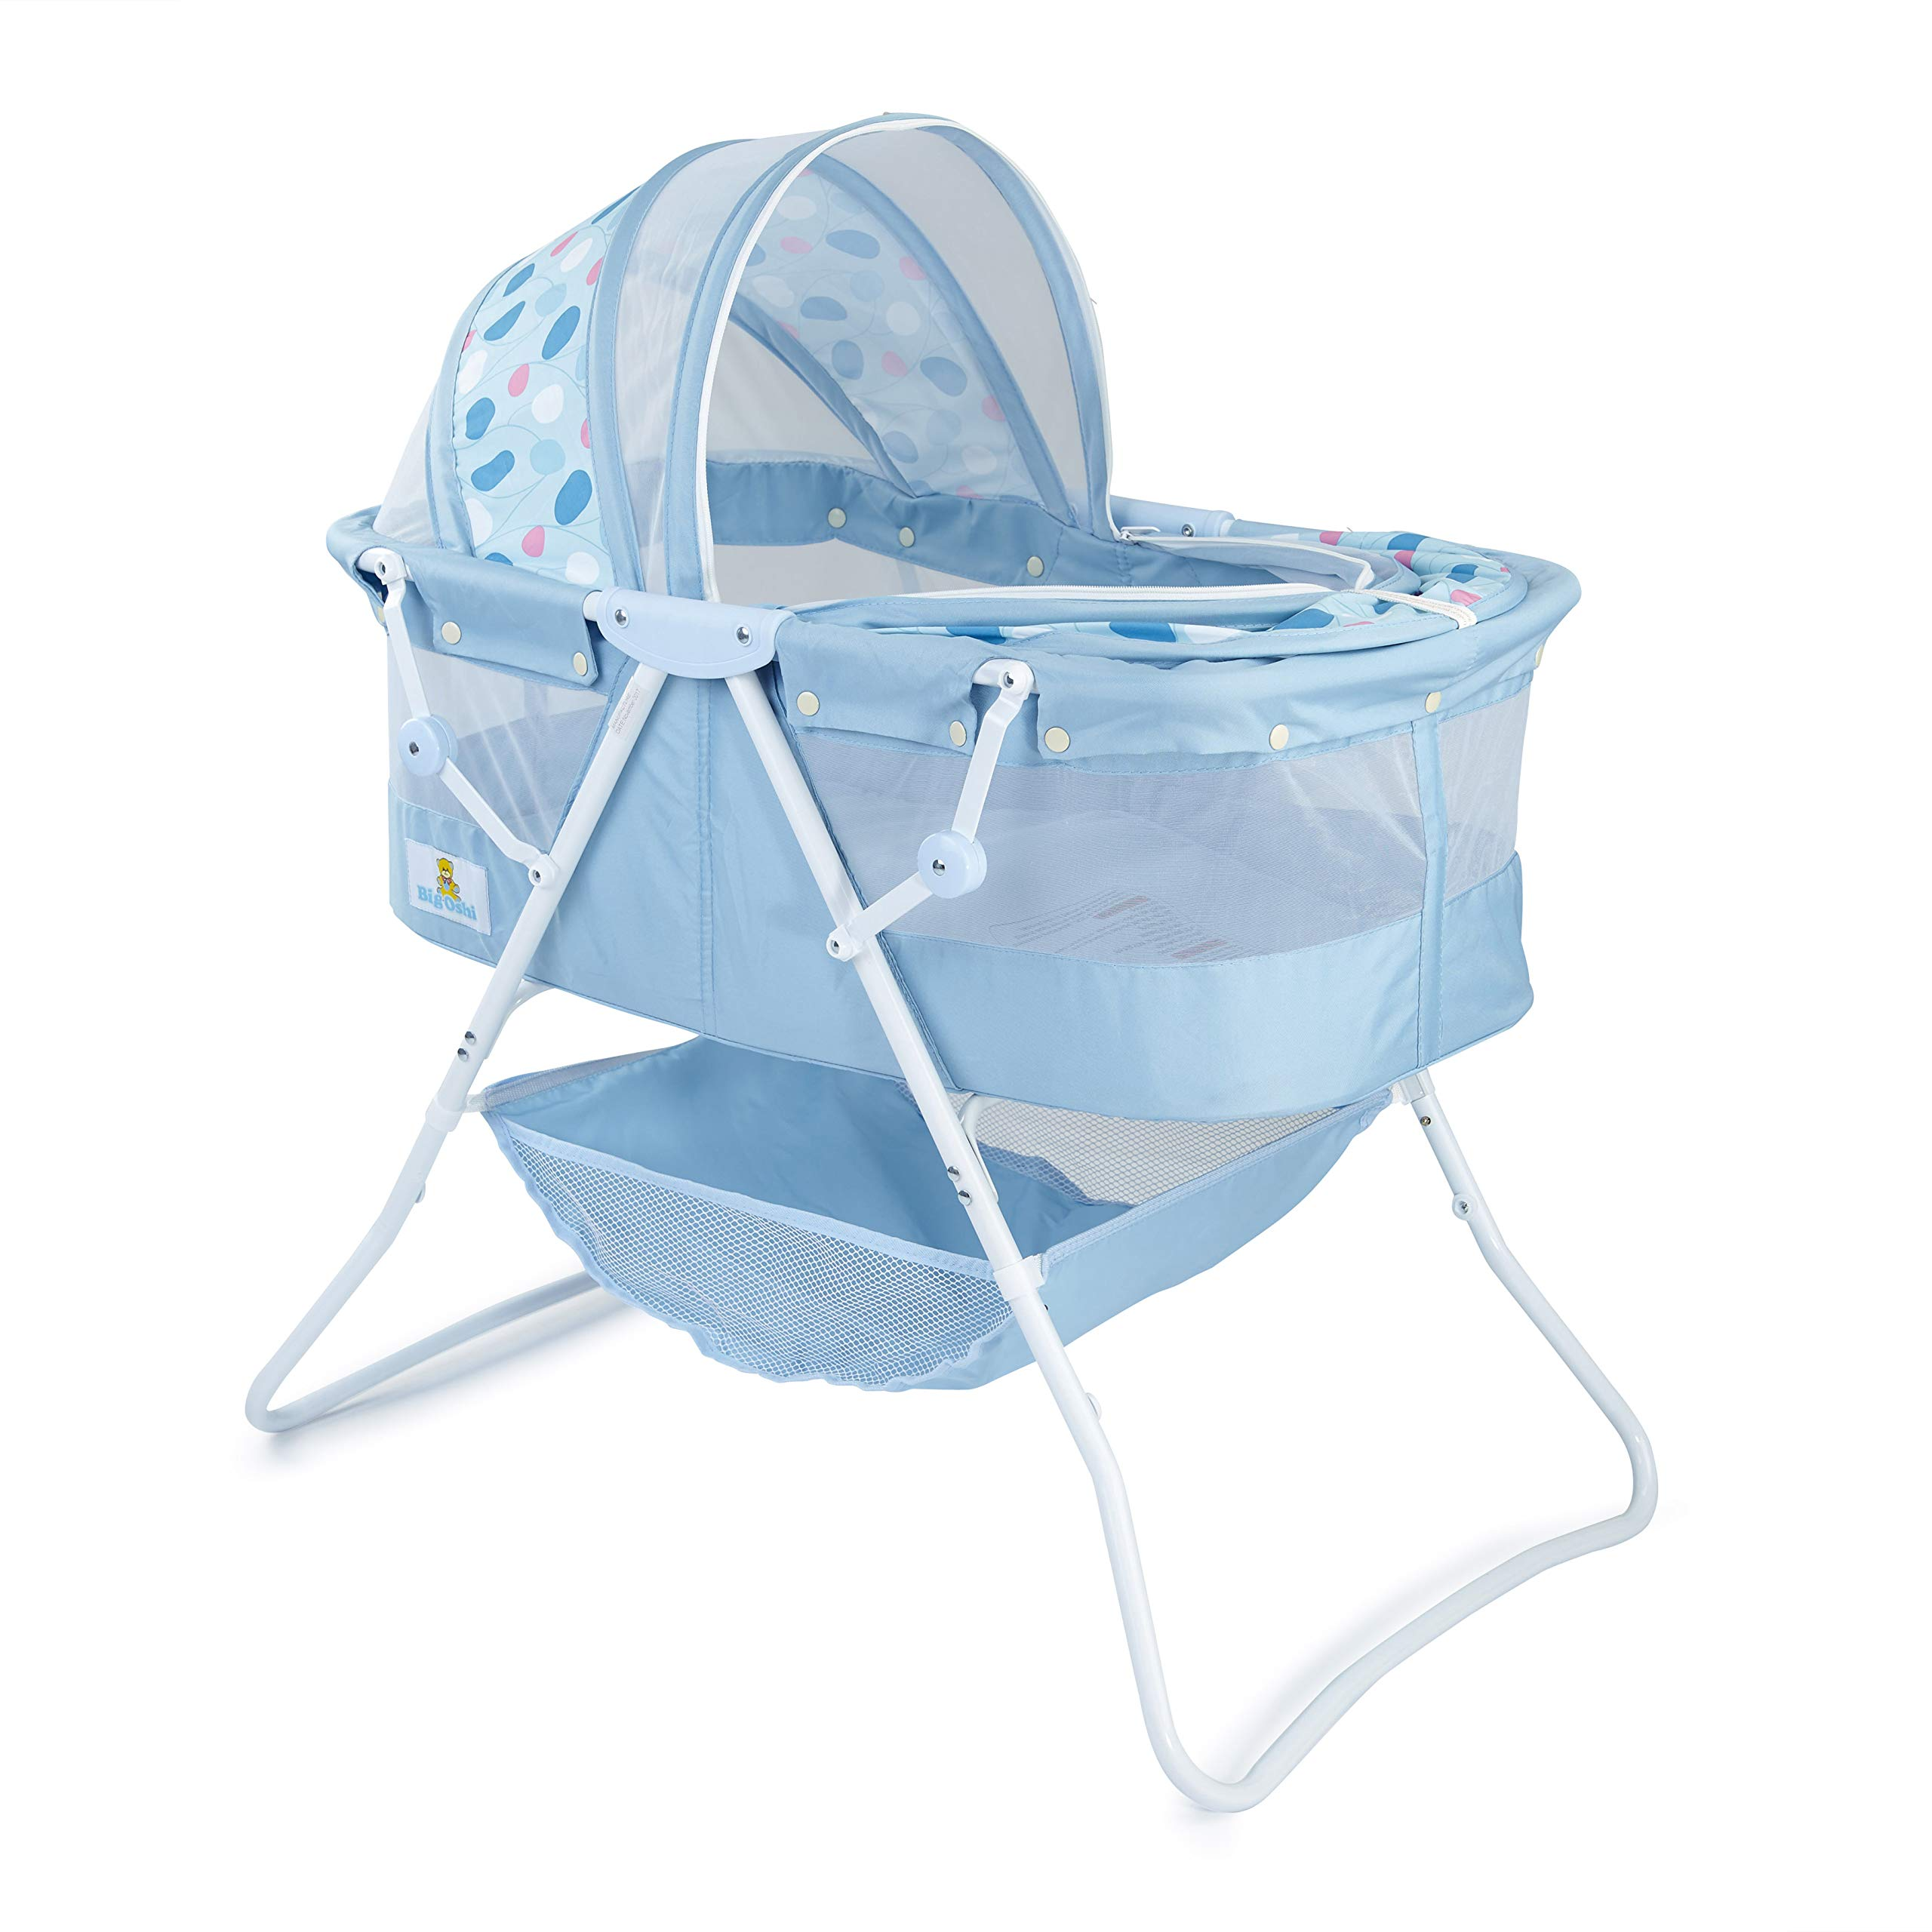 Big Oshi Emma Newborn Baby Bassinet - Portable Bassinet for Boys or Girls - Perfect for Bedside, Indoors, or Outdoors - Lightweight for Travel - Canopy Netting Cover - Wood Bed Base, Blue Circles by Big Oshi